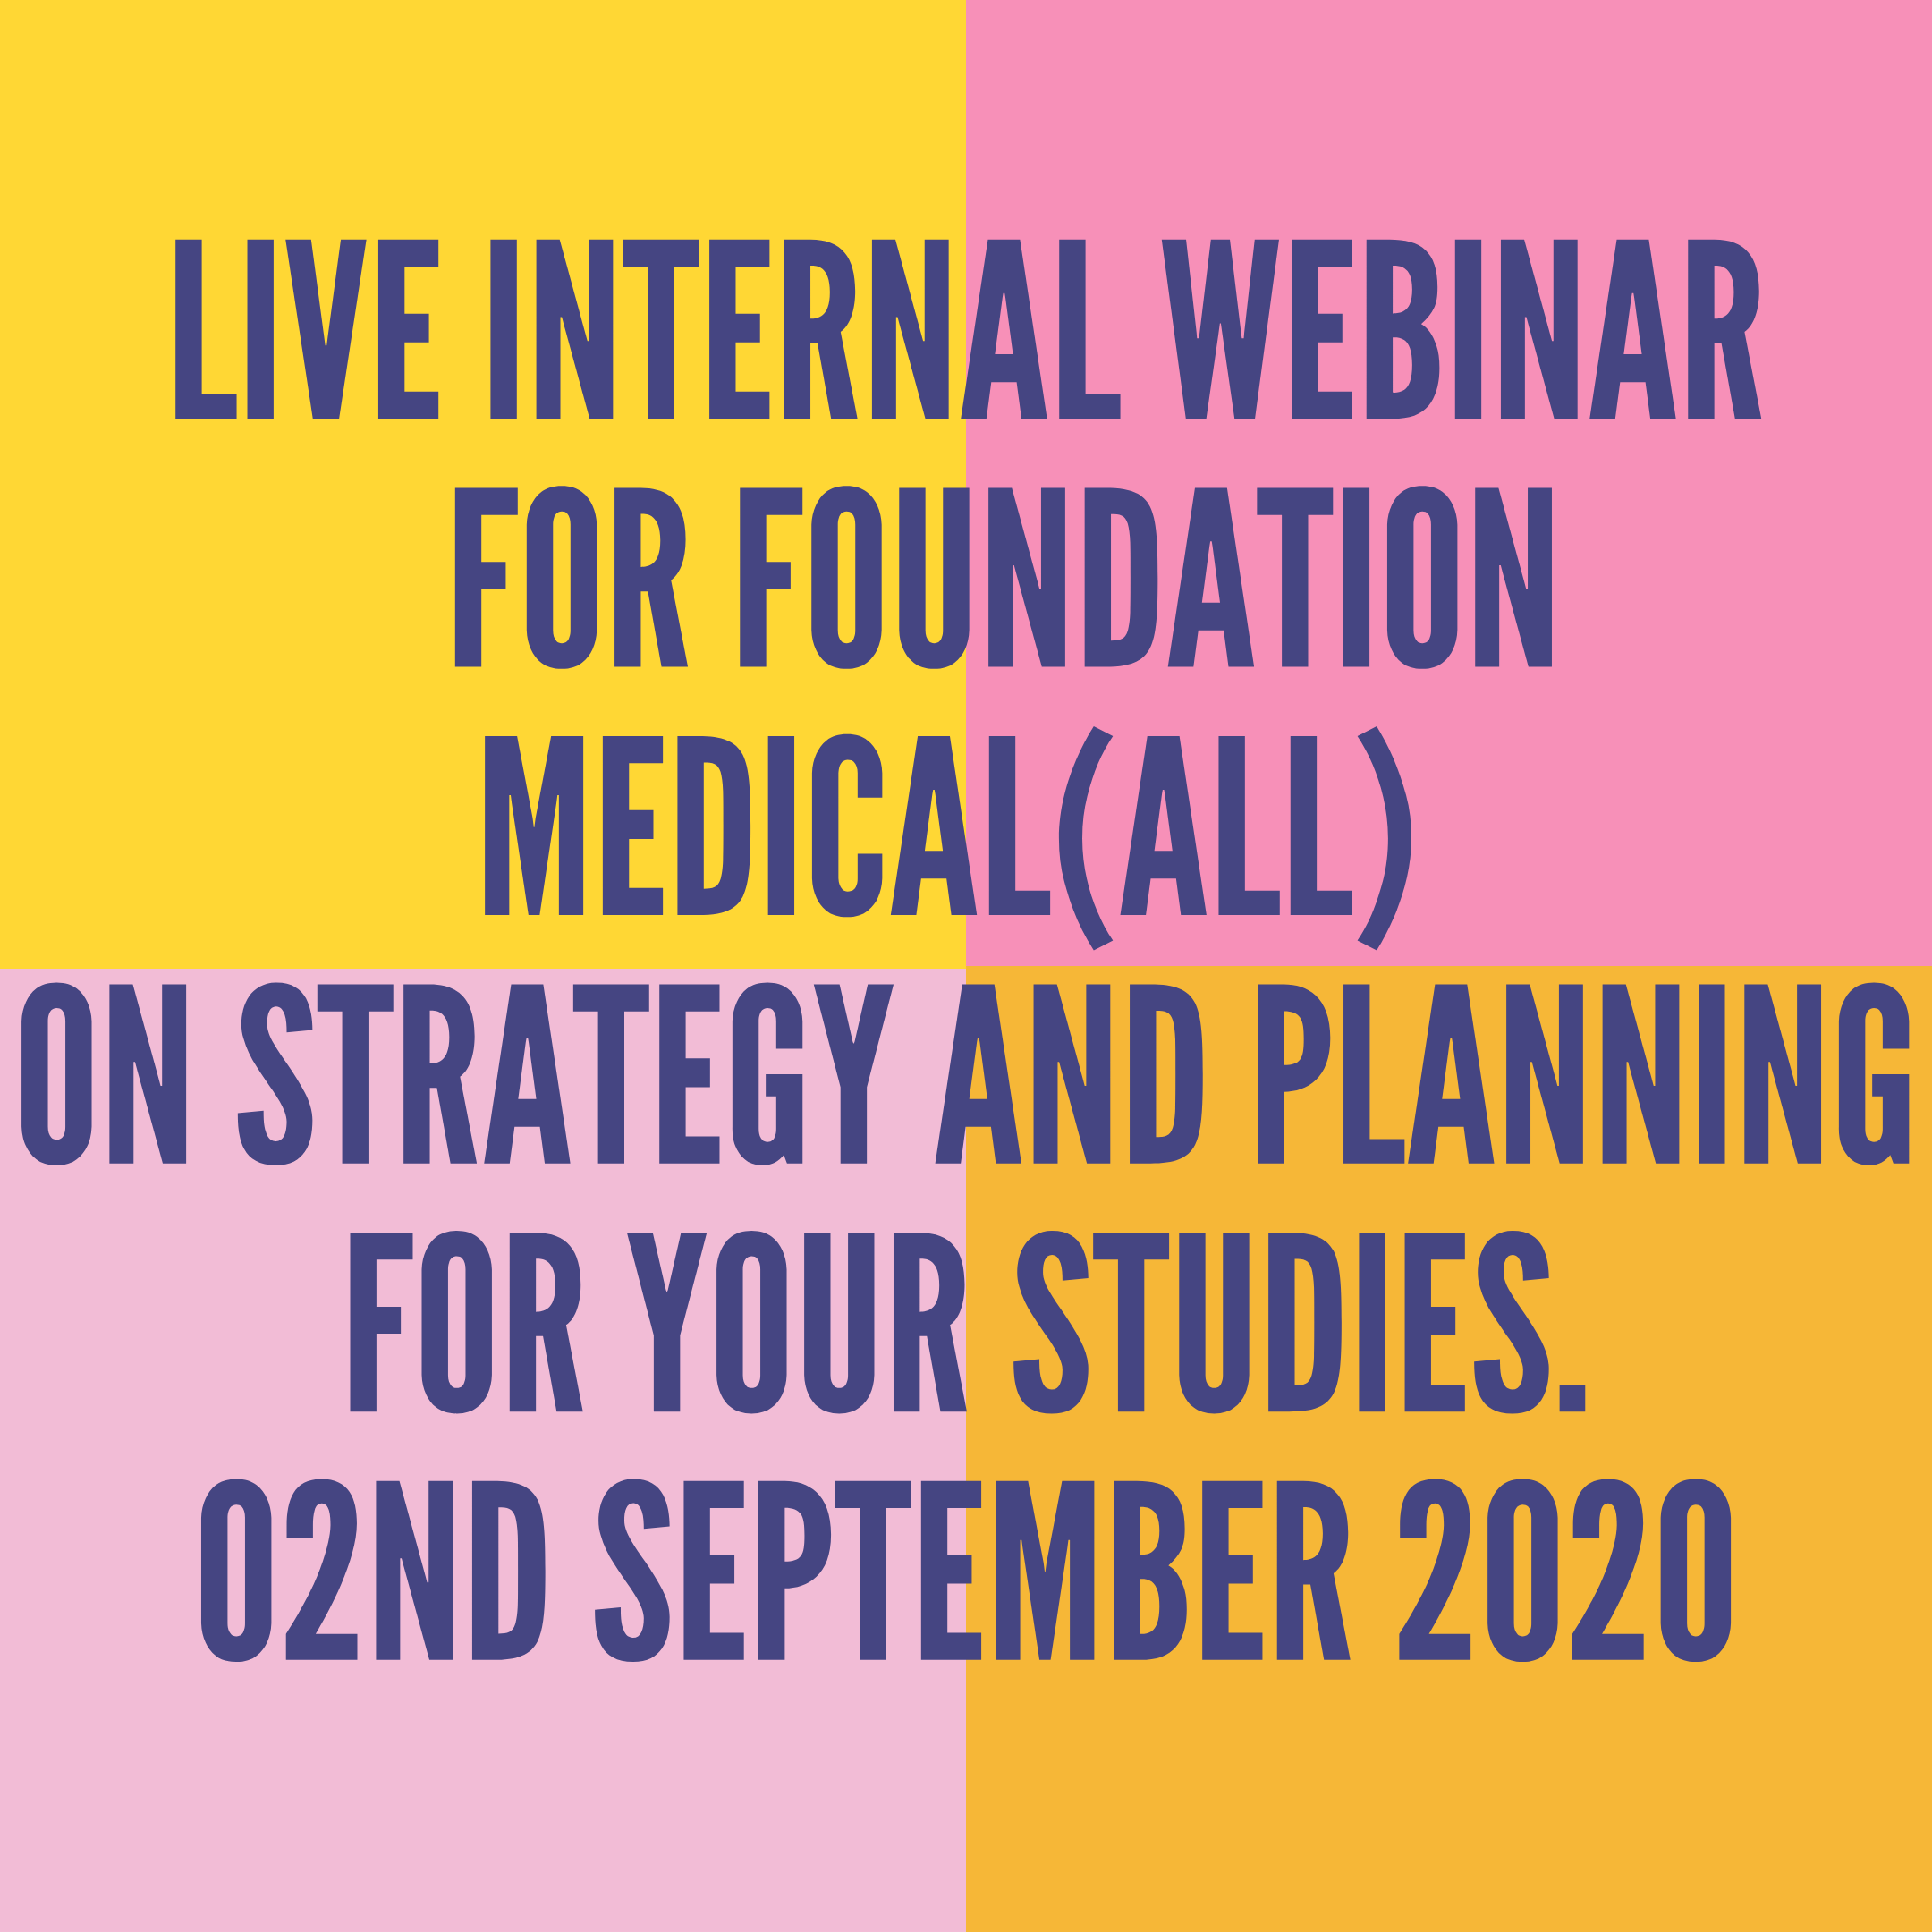 LIVE INTERNAL WEBINAR FOR FOUNDATION MEDICAL(ALL) ON STRATEGY AND PLANNING FOR YOUR STUDIES HELD ON 02ND SEPTEMBER 2020